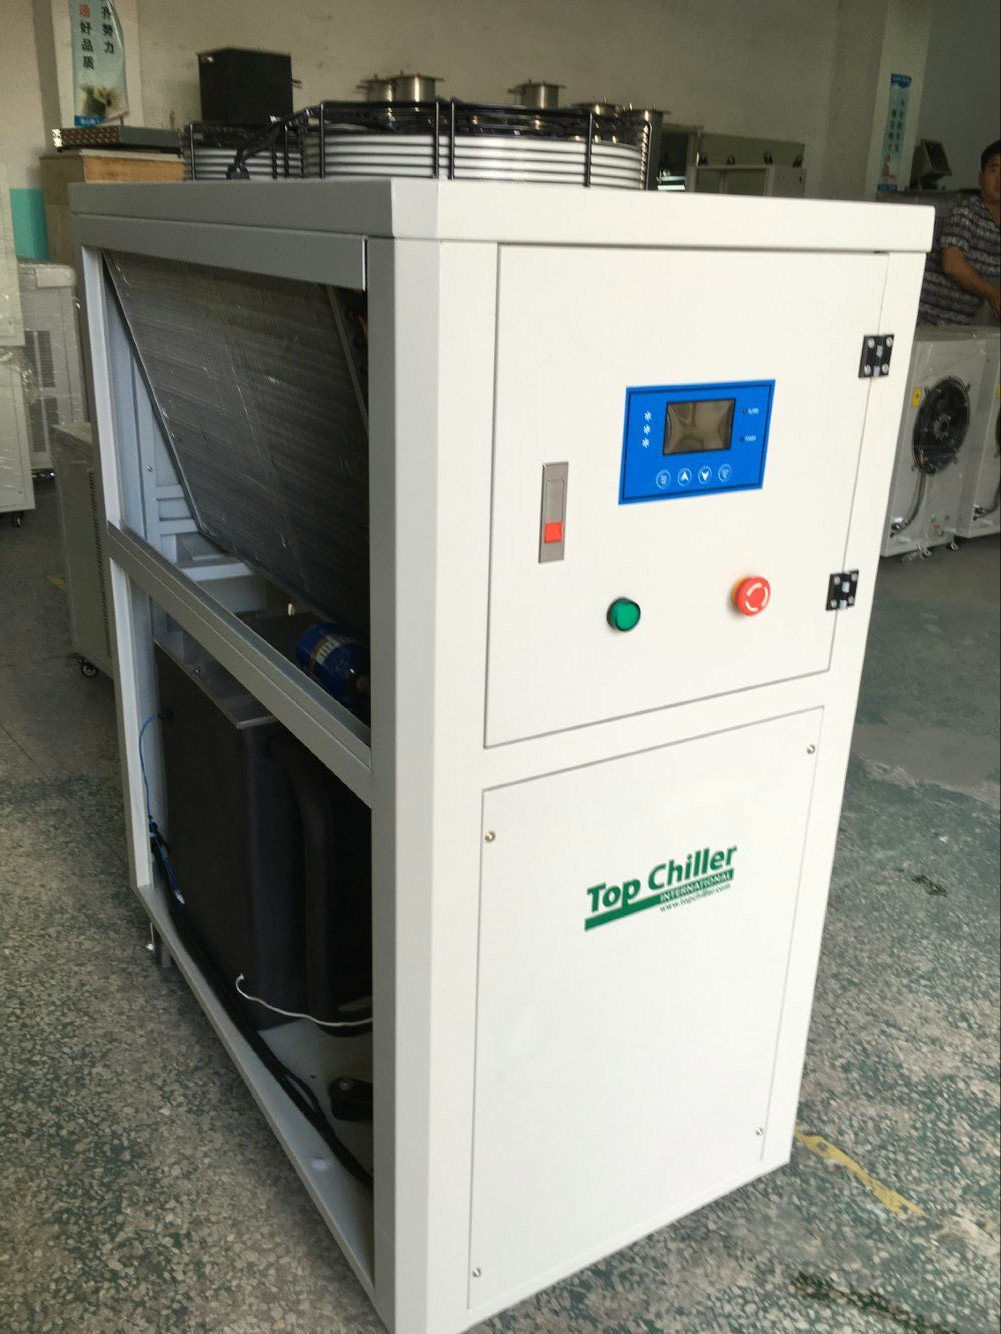 22kw/36kw Air Cooled Water Chiller Used in Induction Heating